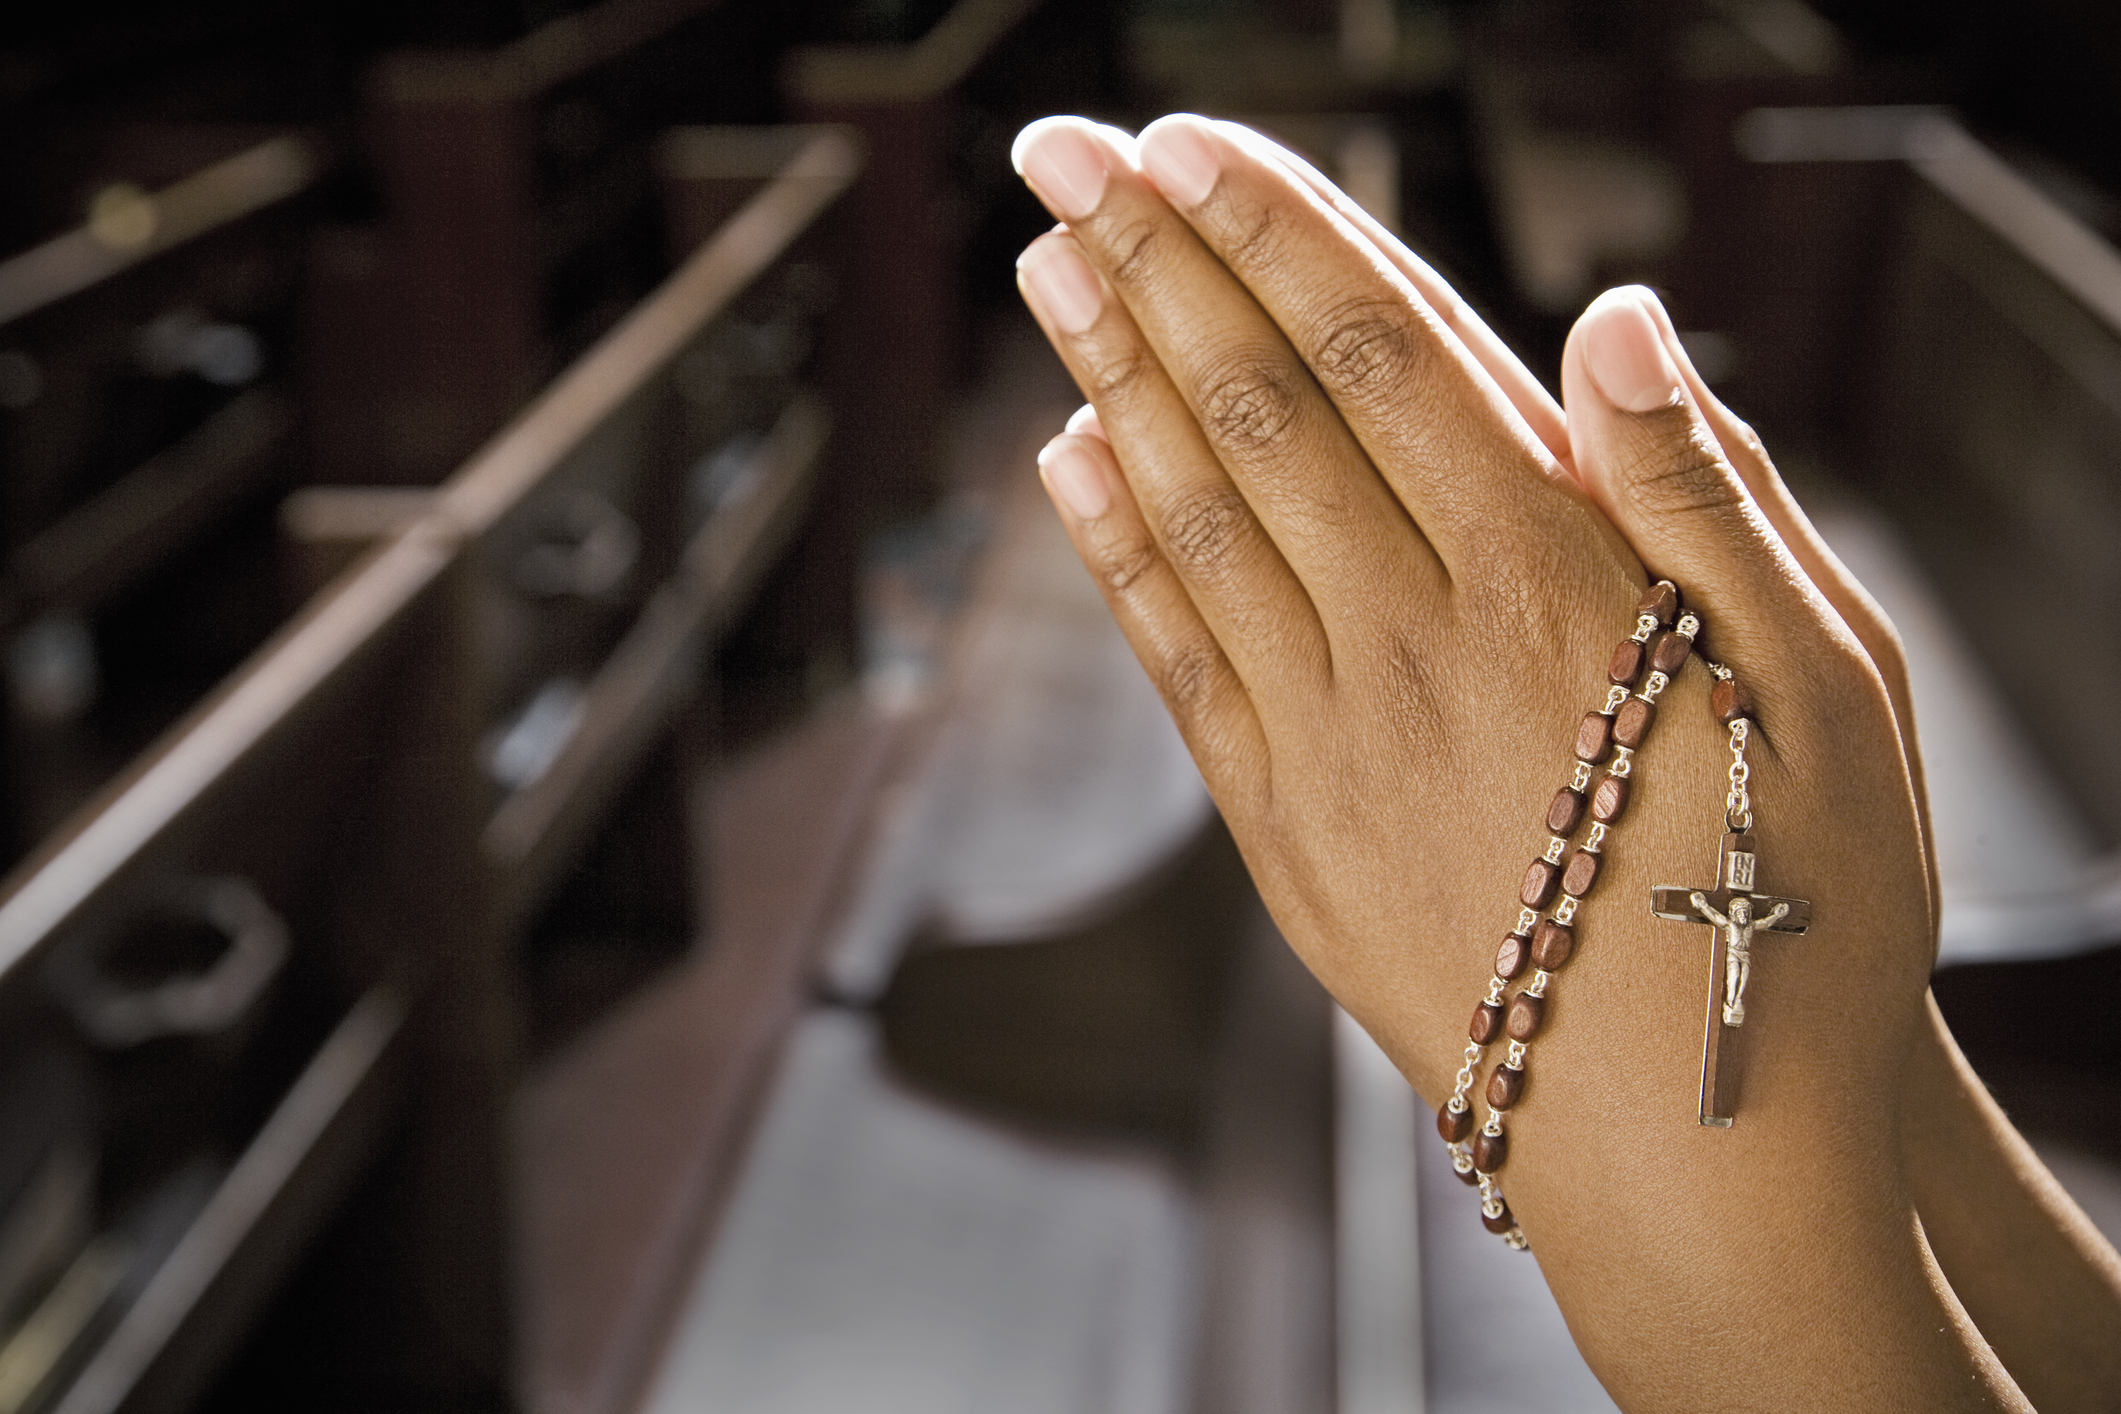 Hands Praying in Church With Rosary.